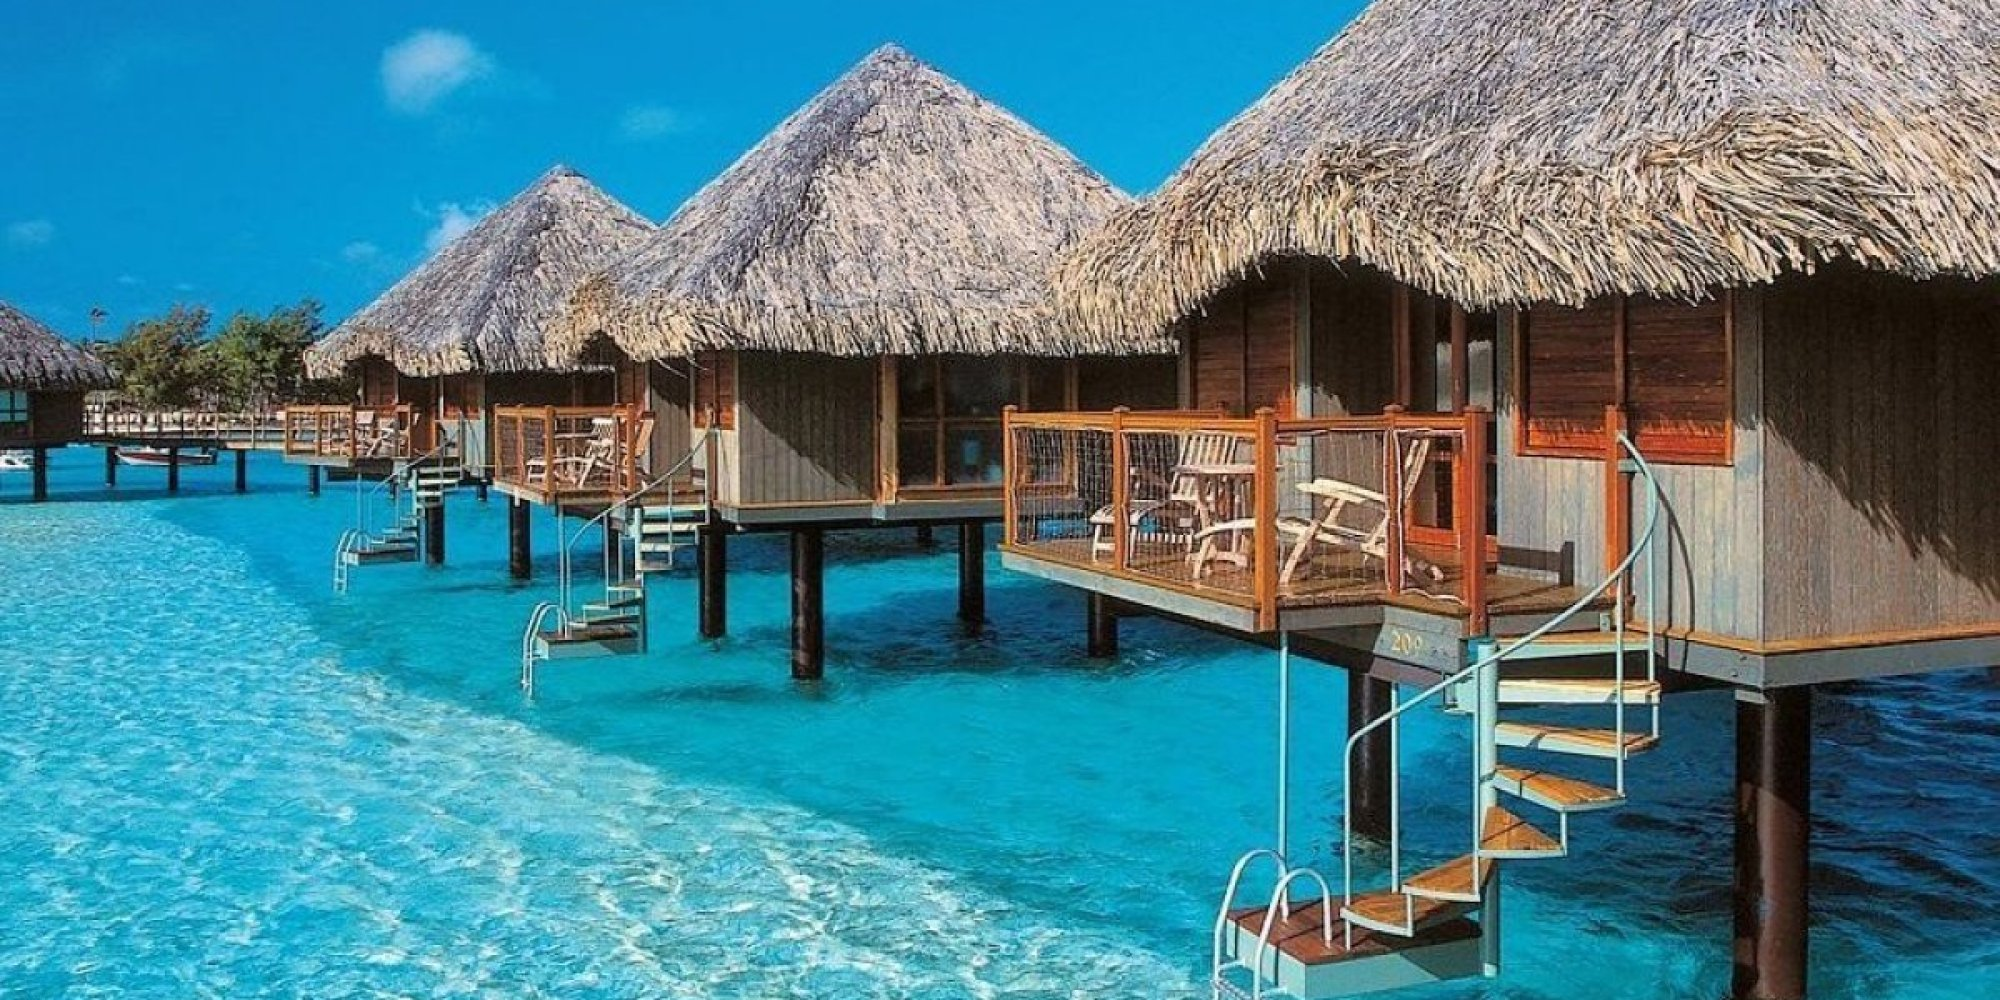 10 Most Beautiful Places In The World For Honeymoon